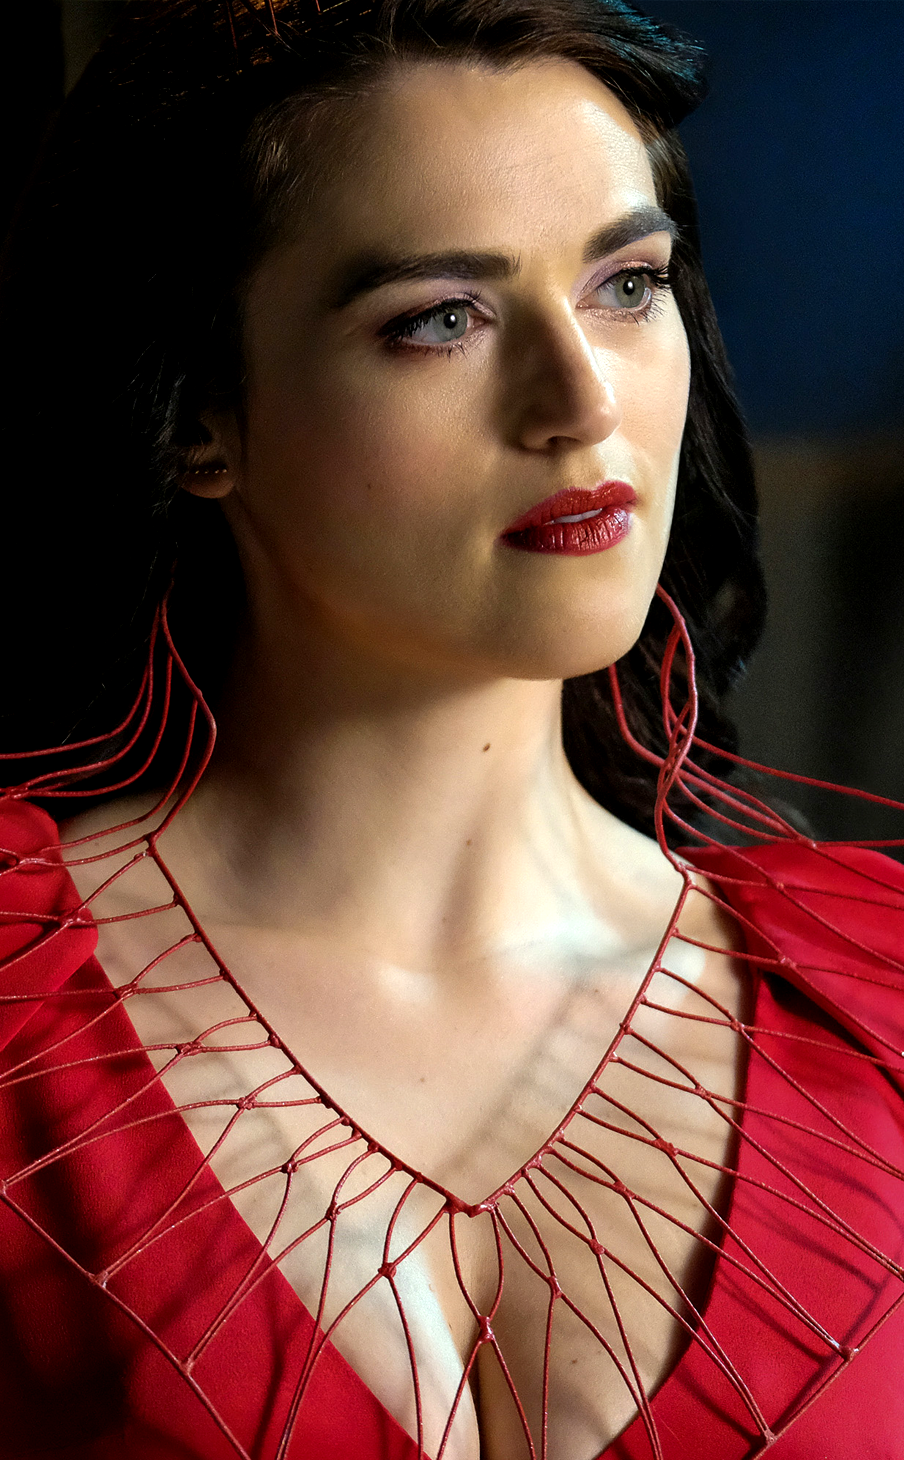 Regret, De katie mcgrath xxx think